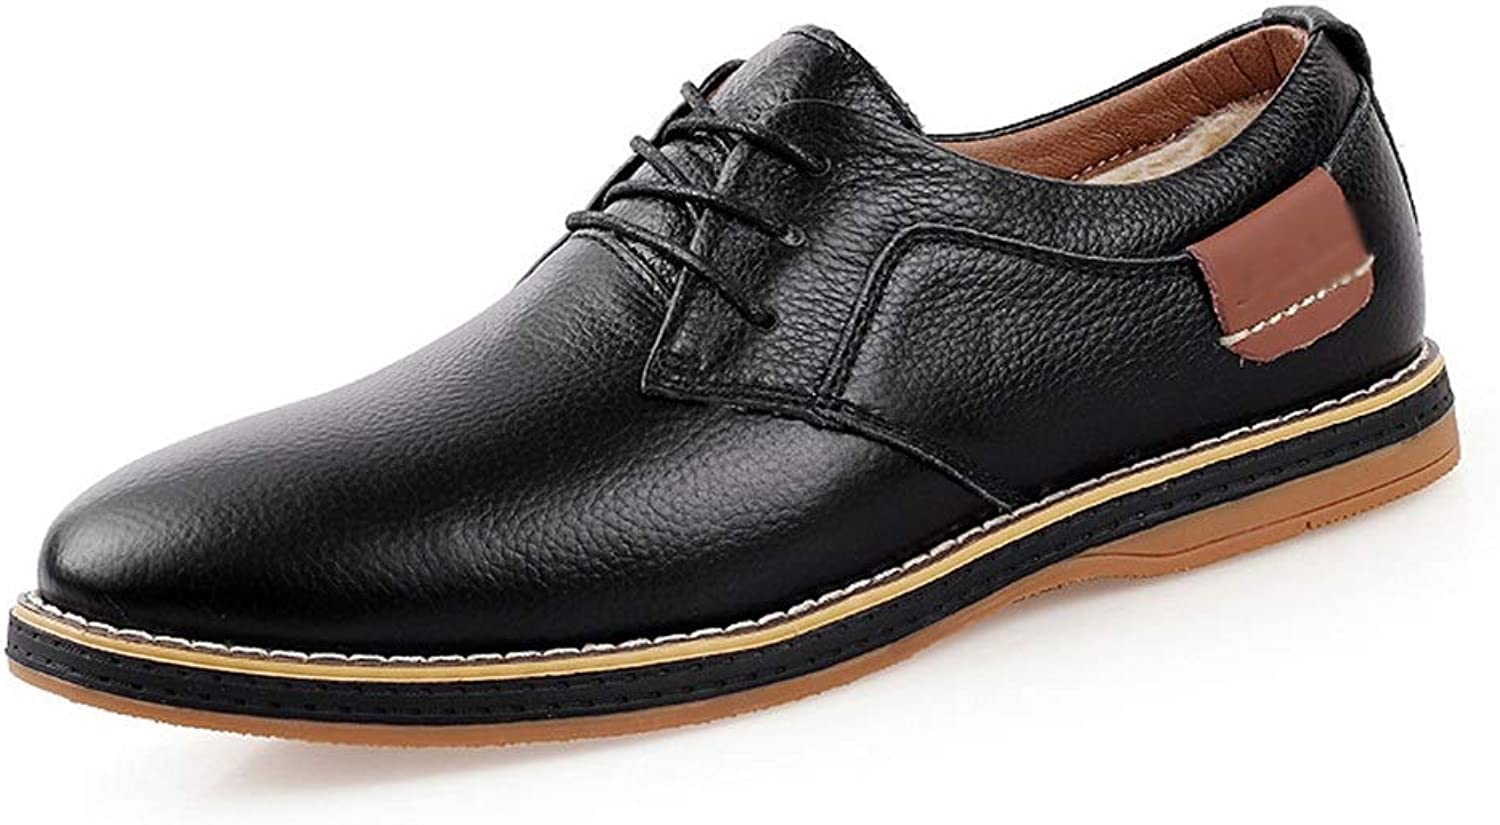 Men's Toe Layer Leather England shoes Business shoes Leather Casual shoes (color   Black (Single shoes), Size   44)